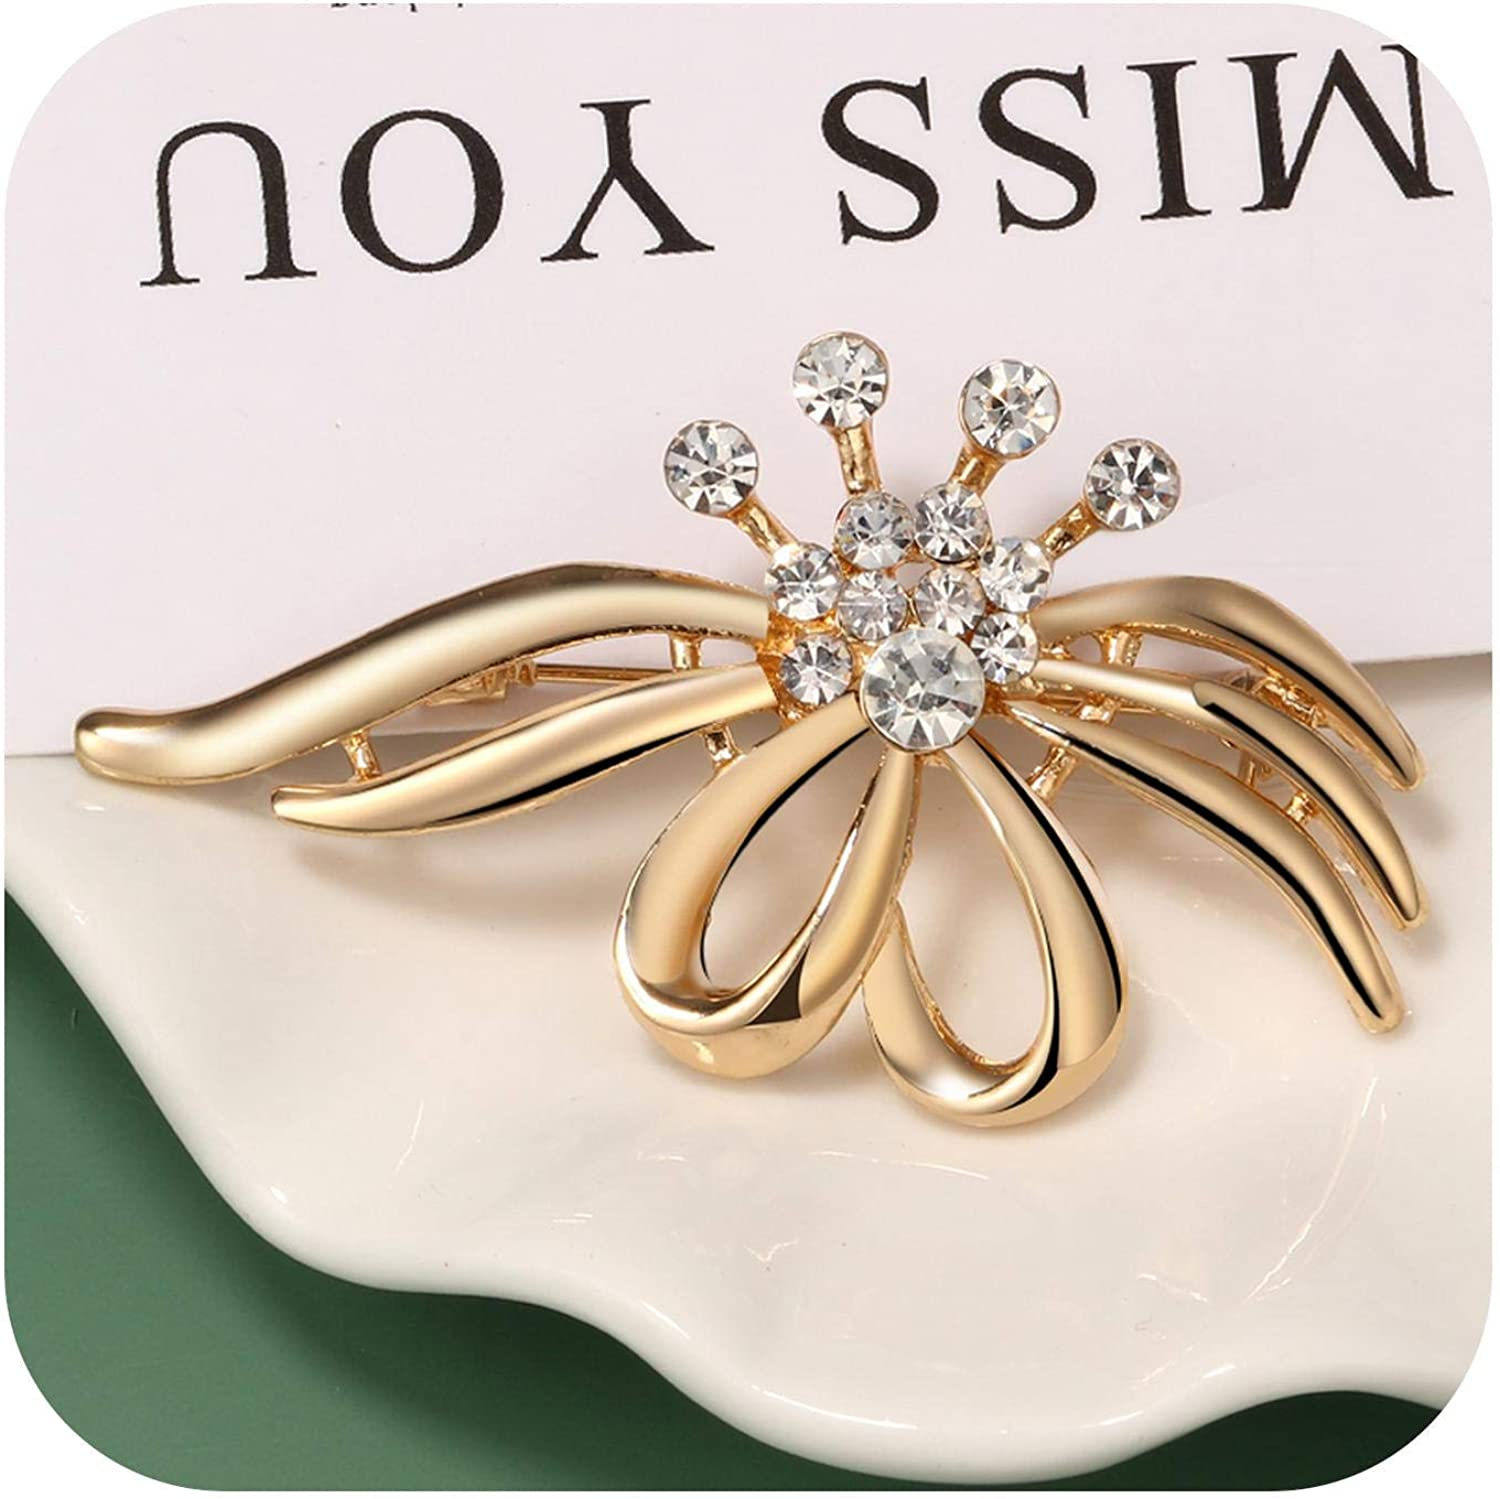 Chllrg Unique Design Cute Animal Spider Brooch Crystal Pin Women Clothes Sweater Jewelry Stranger Things